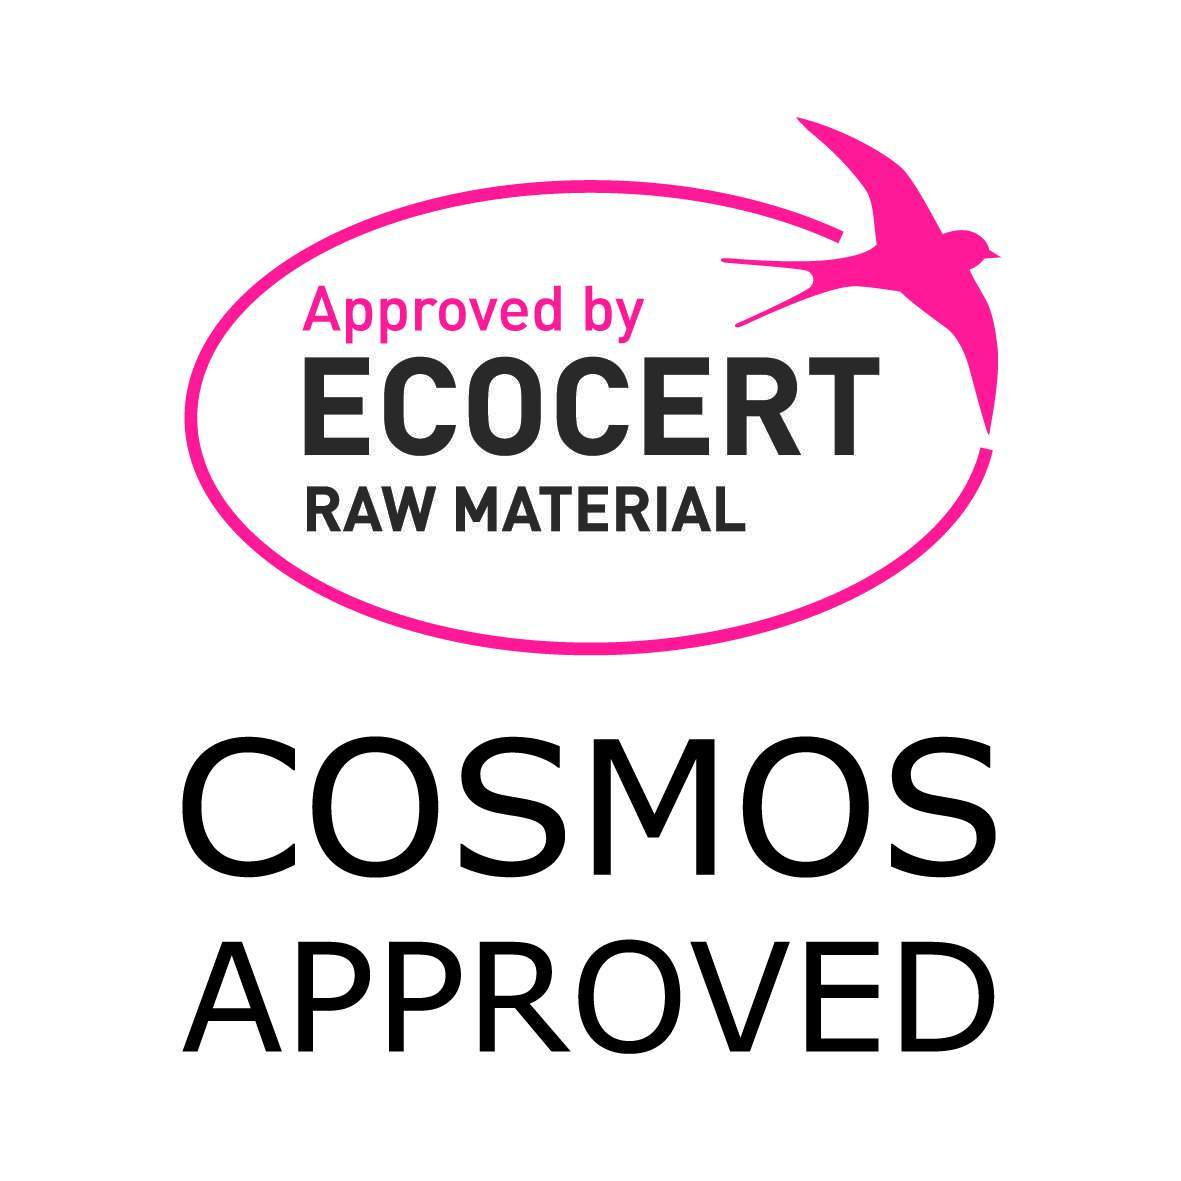 COSMOS and ECOCERT approved logo for Croda ingredients.Formulators looking to create natural personal care products for consumers can utilise this certification to indicate natural ingredients.